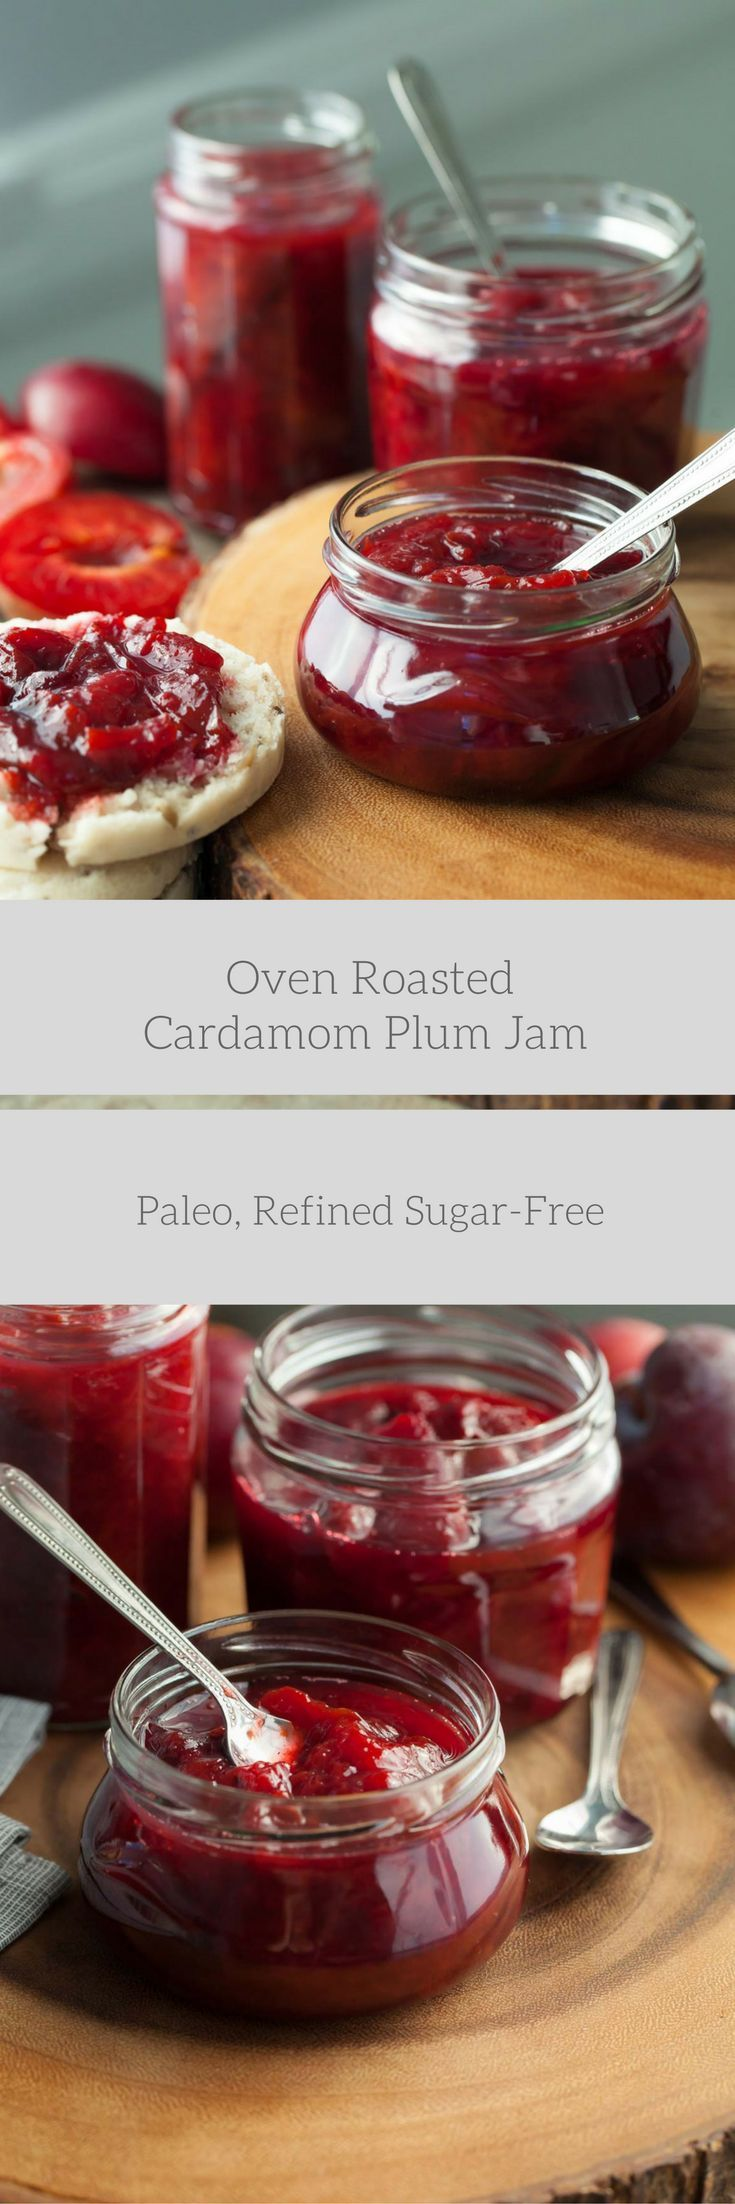 Oven Roasted Plum Cardamom Jam (Paleo, Refined Sugar-Free) - A naturally sweetenedand delicately spiced sweet/tart plum spread that's easily made in the oven.